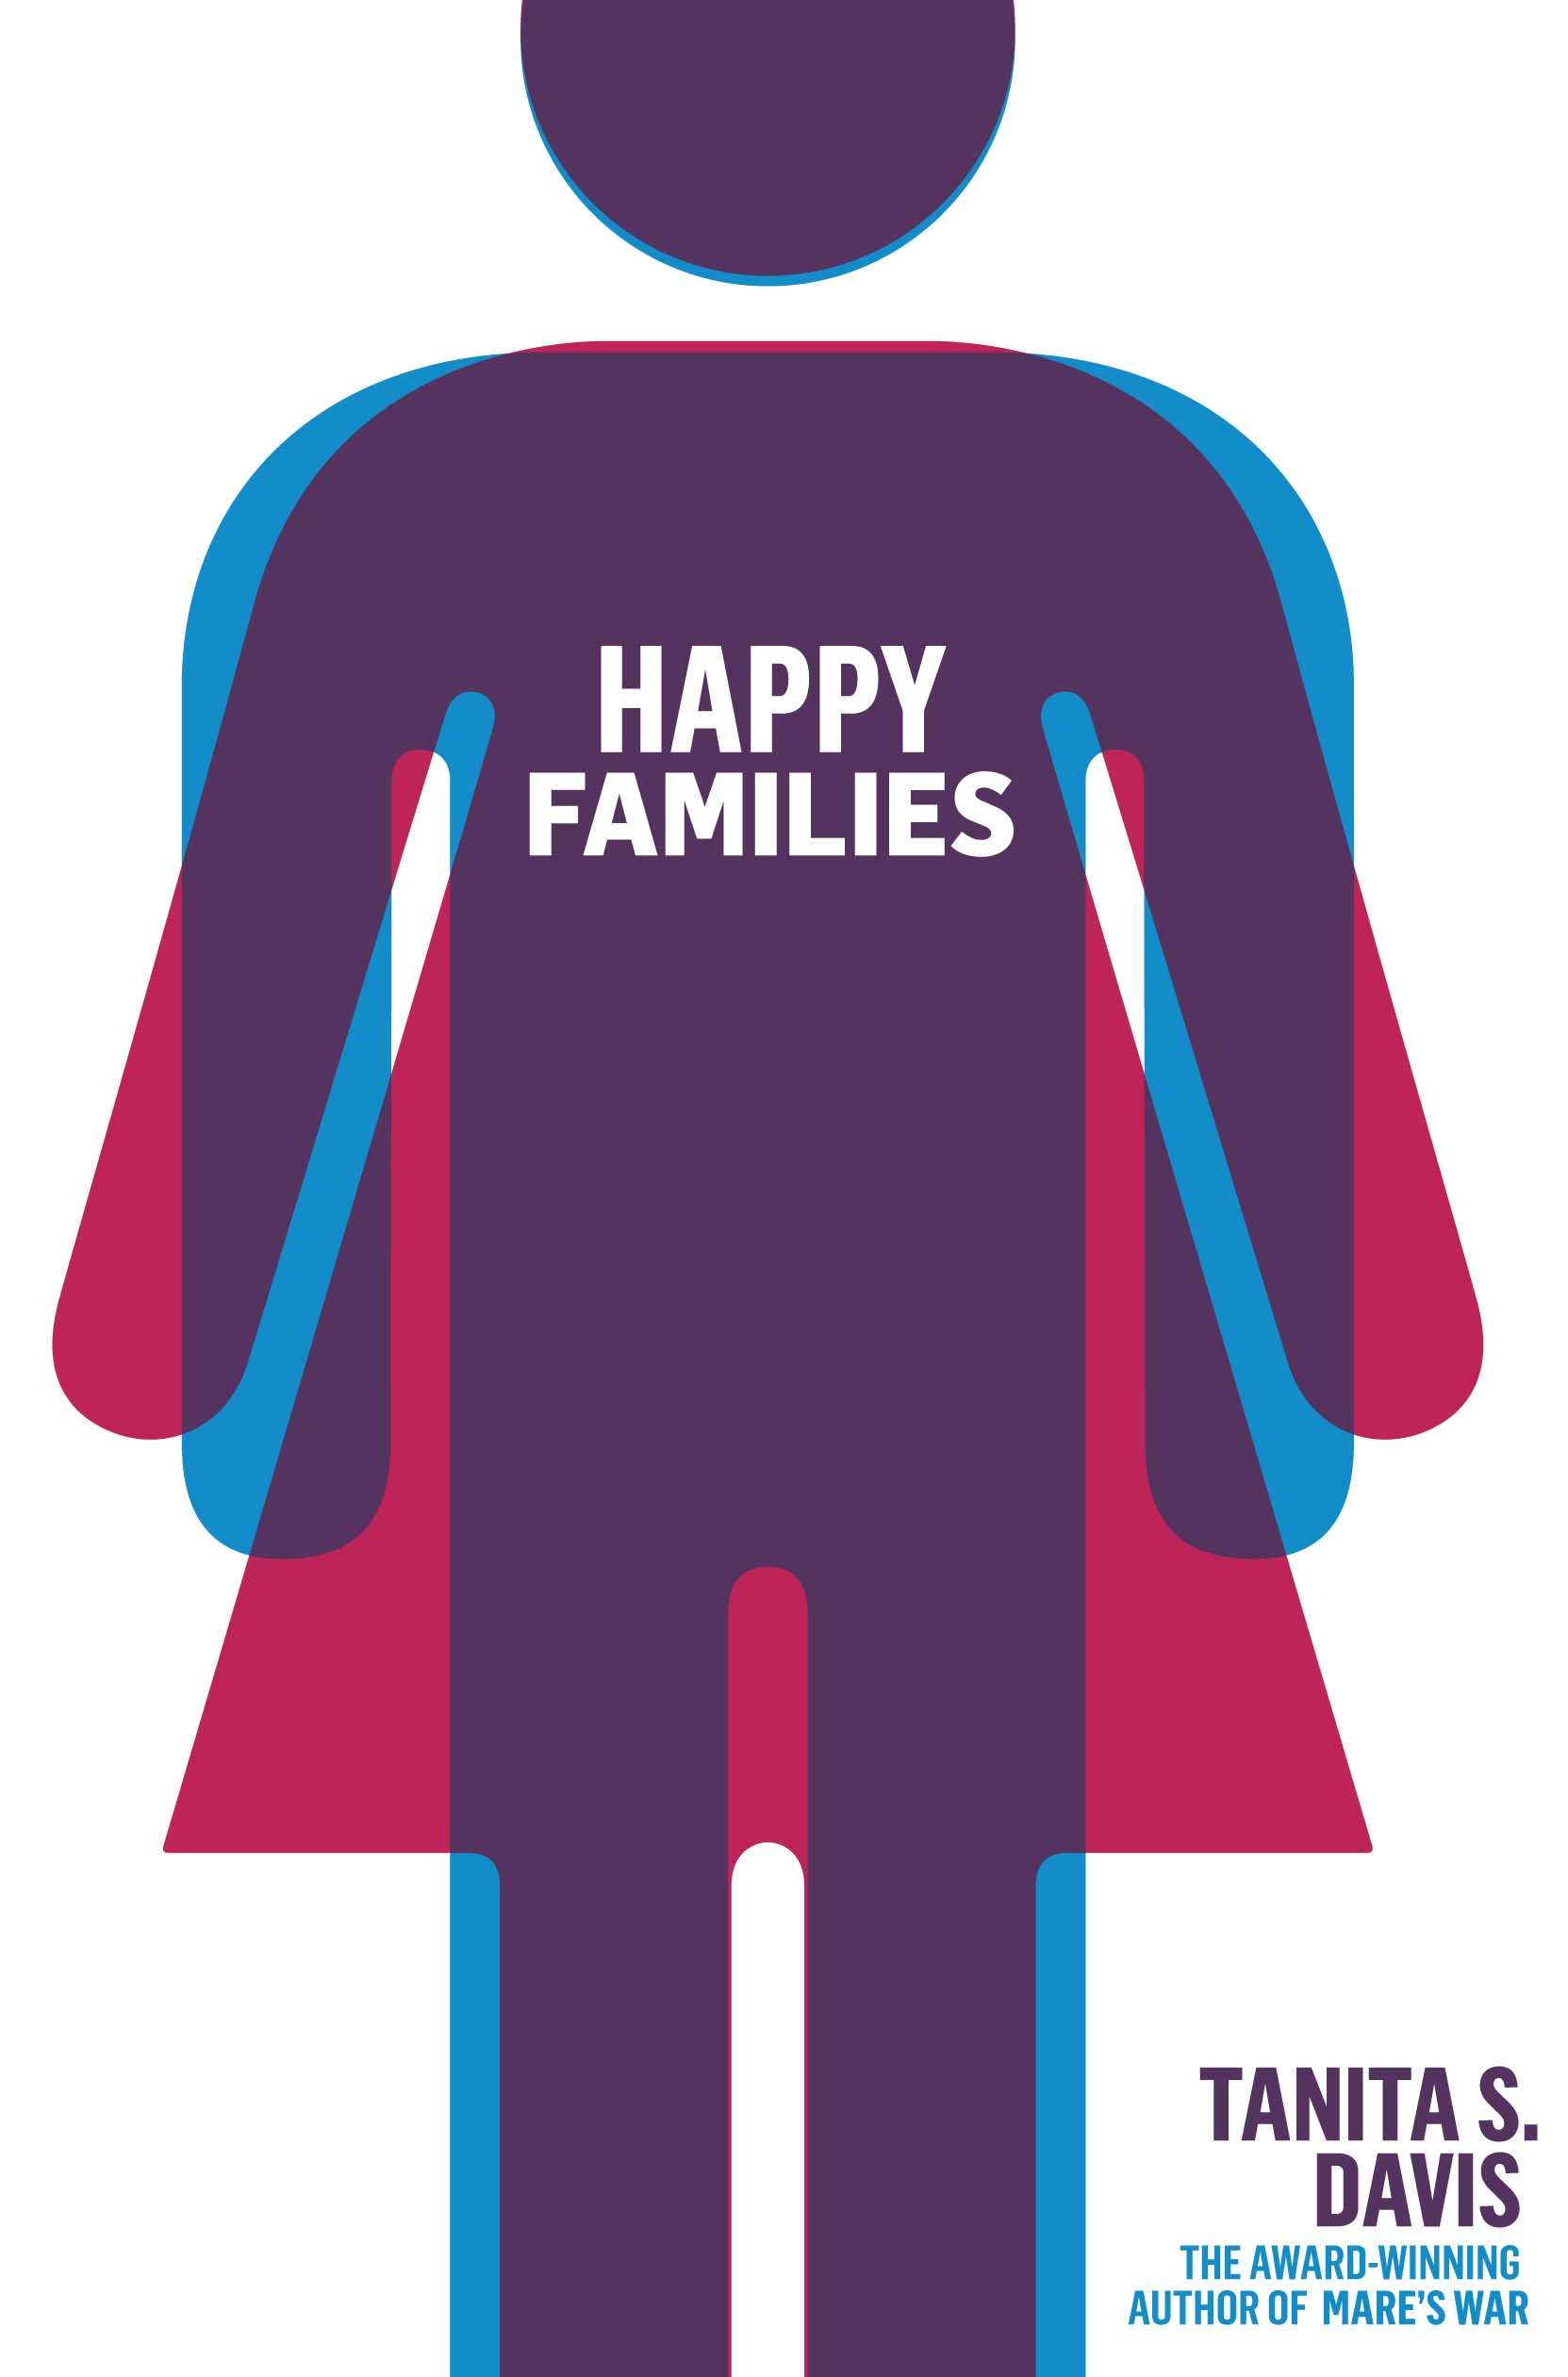 Happy Families by Tanita S. Davis